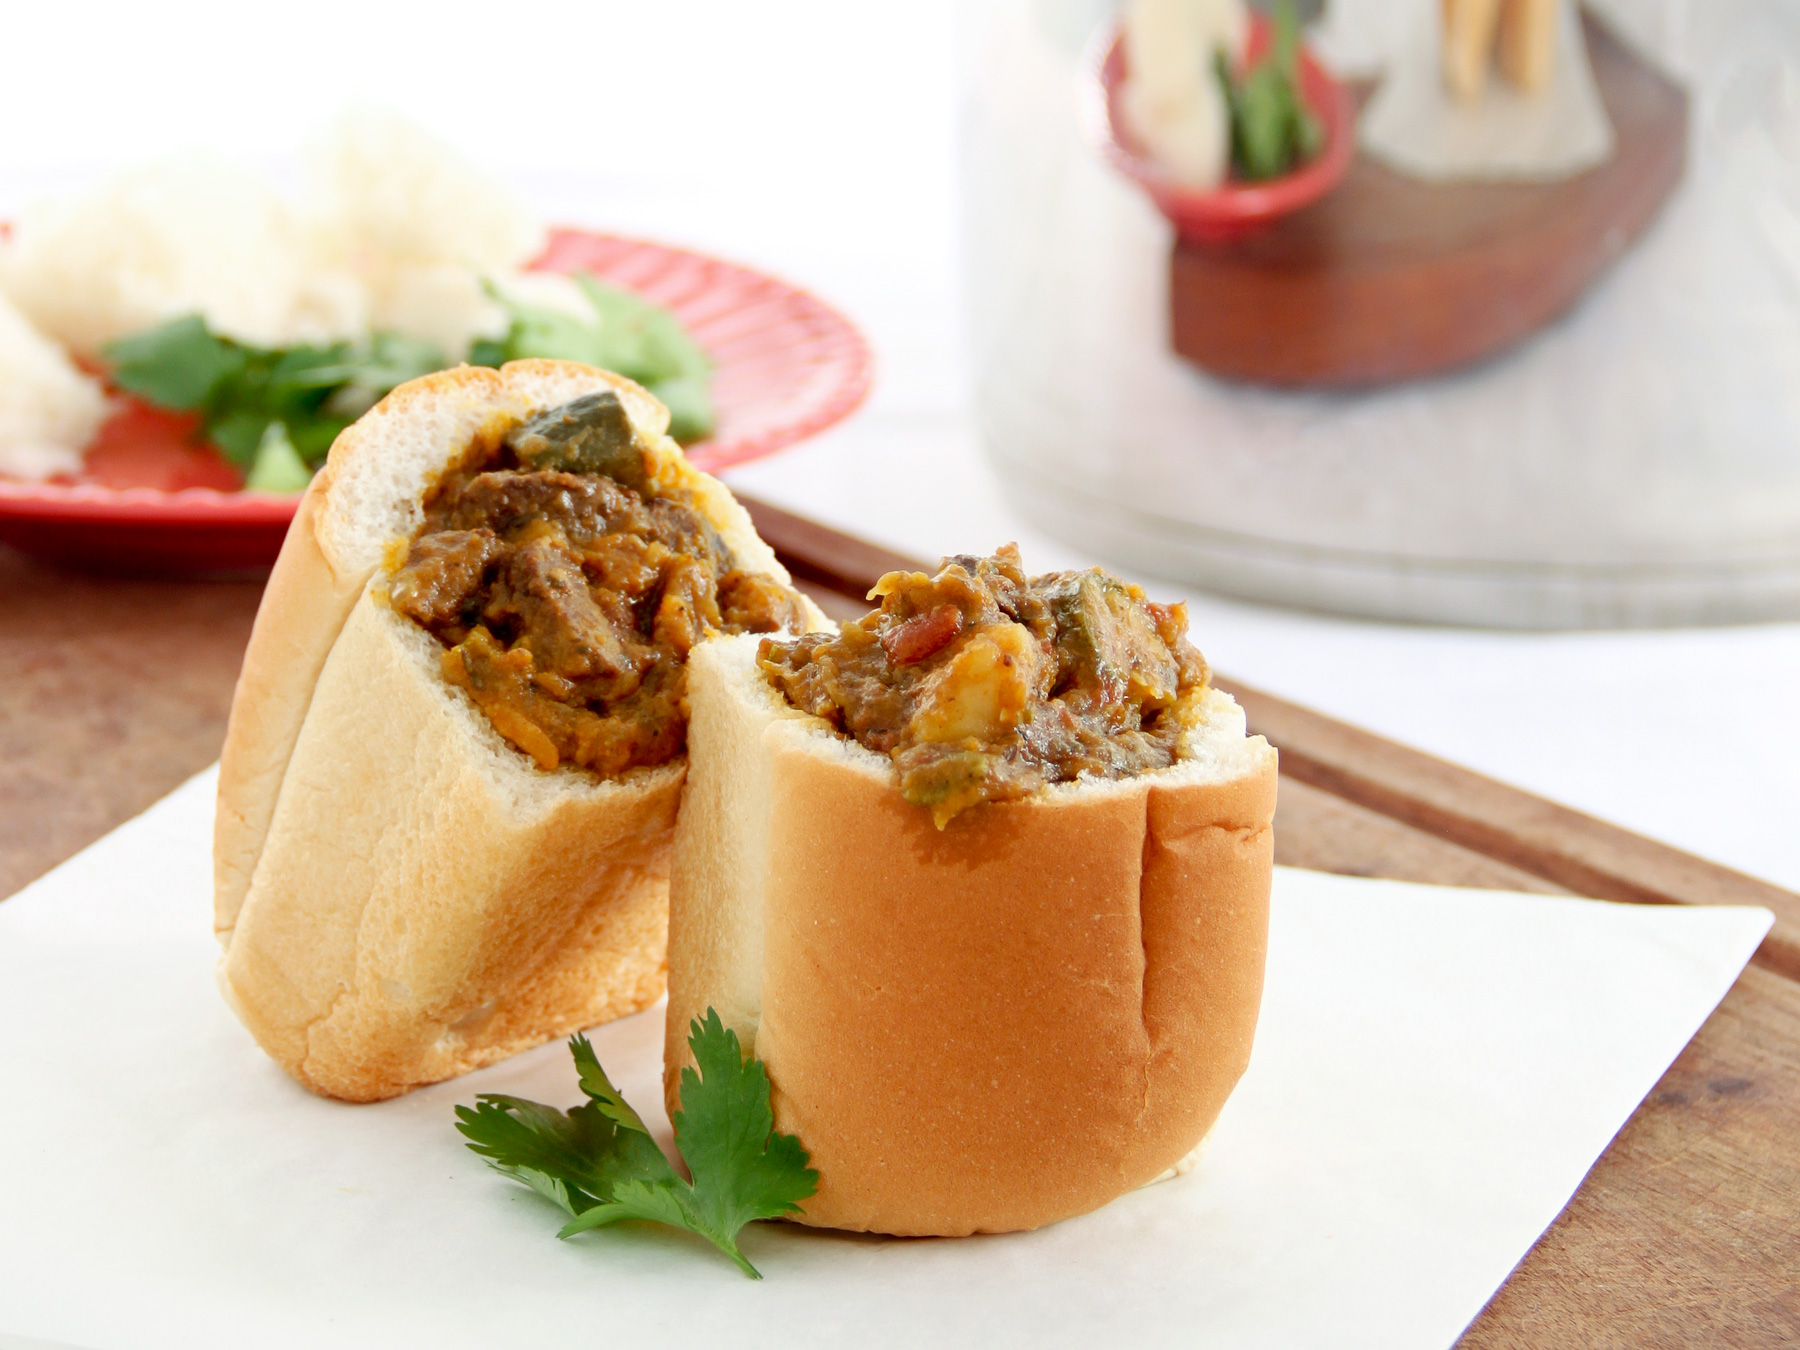 mutton curry bunny chow in a mini loaf using AMC Speedcooker